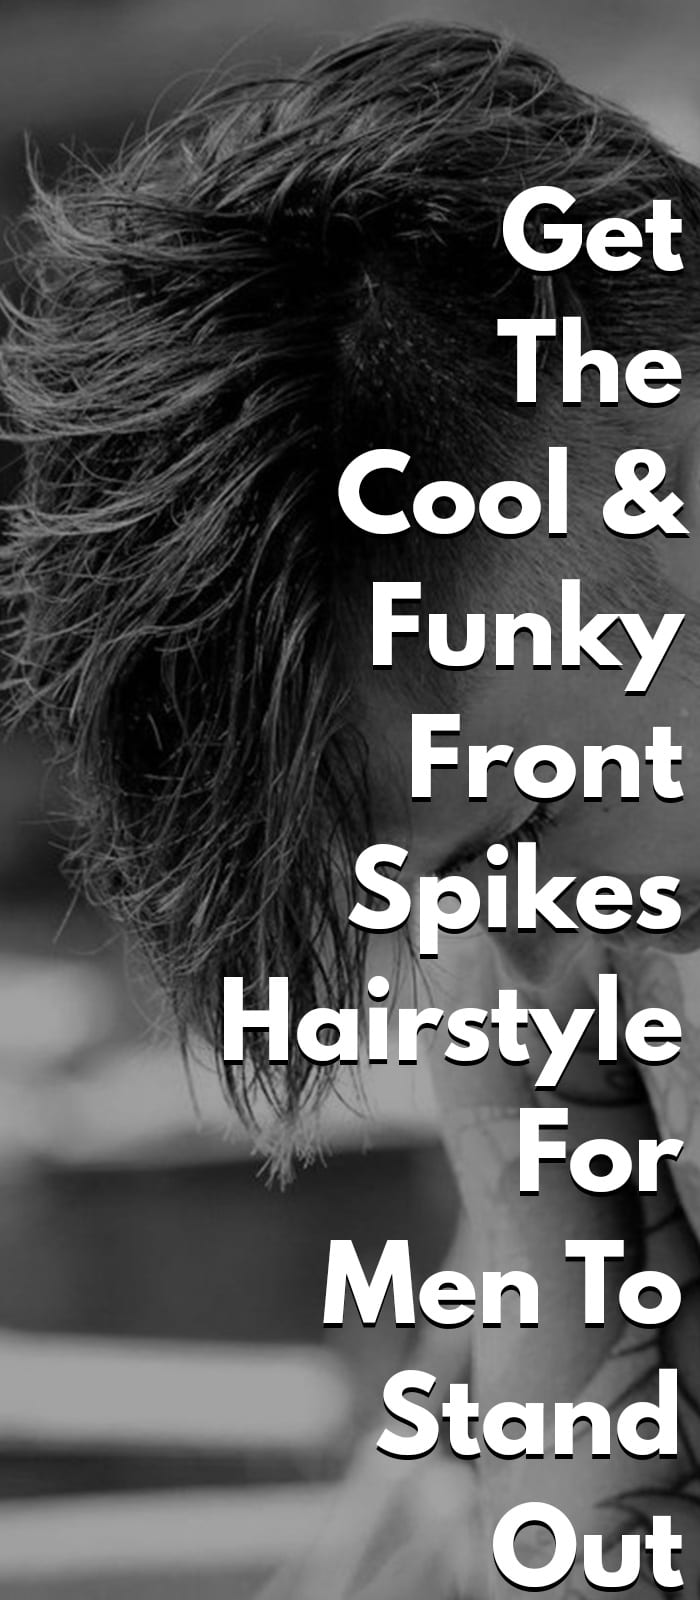 Funky Front Spikes Hairstyle For Men